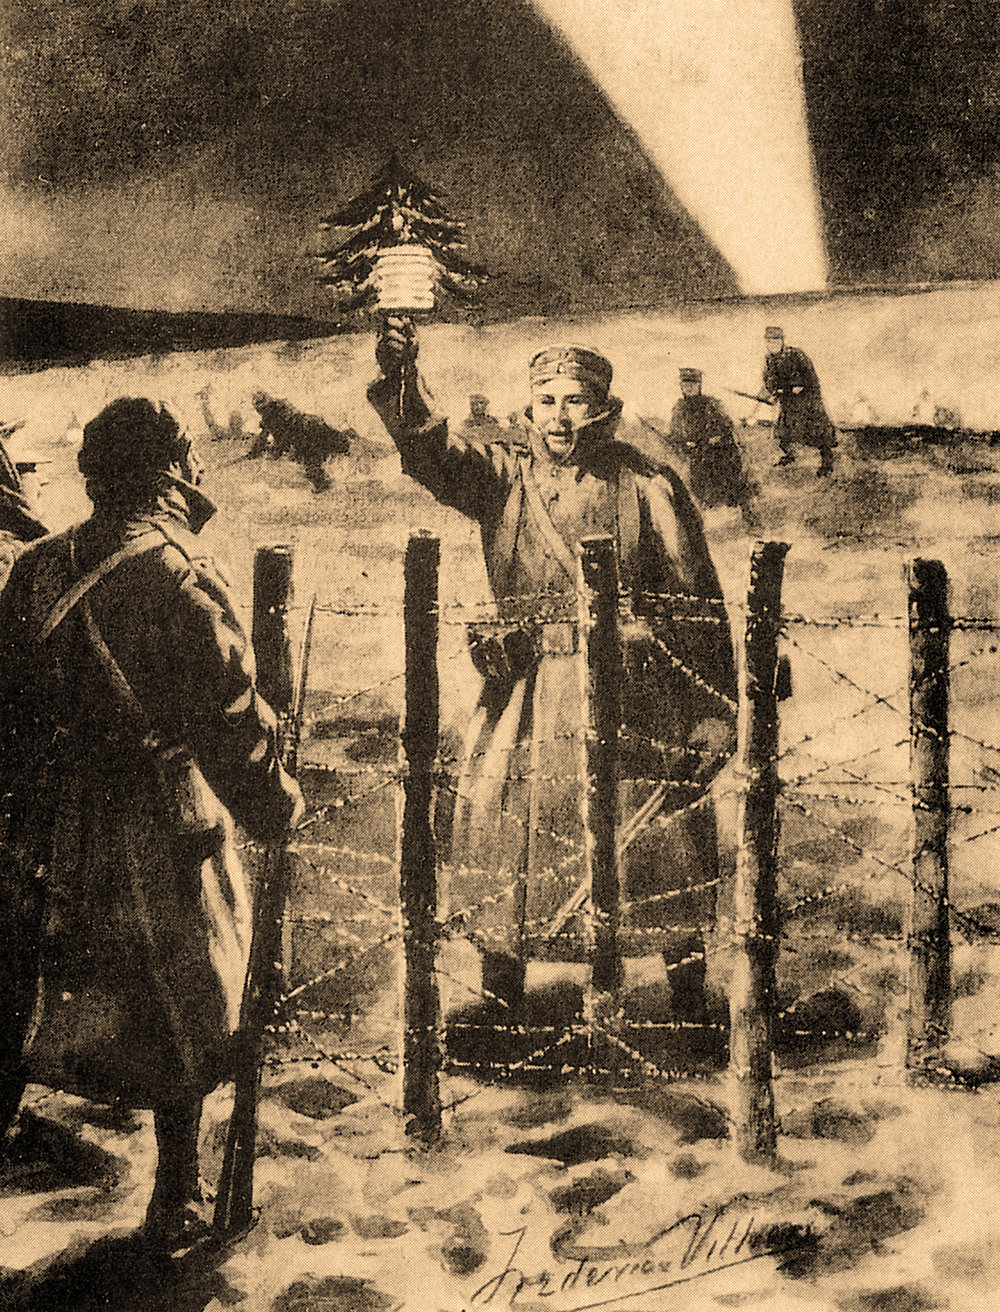 Illustration of the Christmas Truce